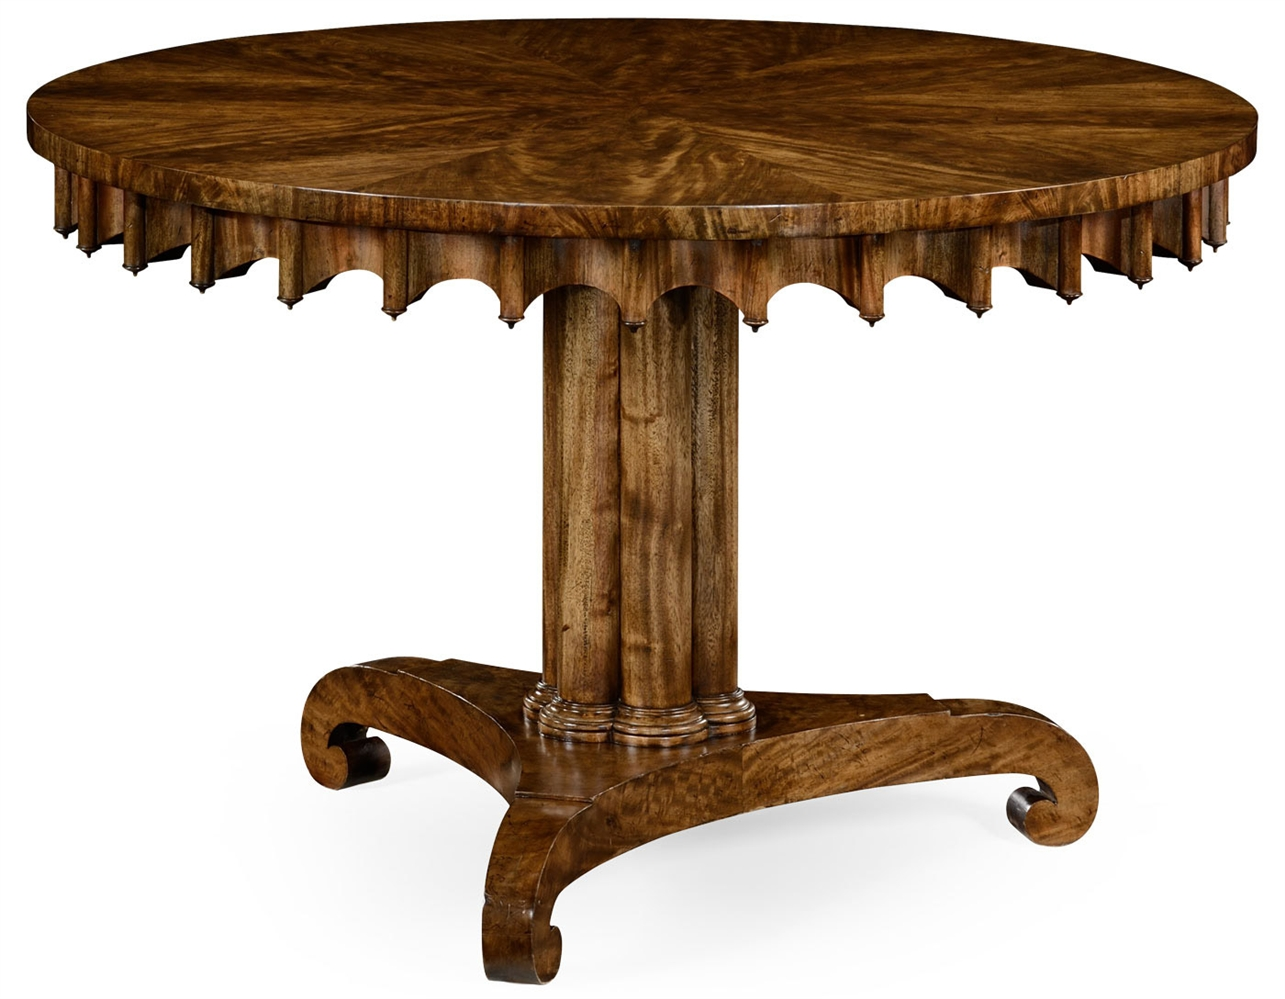 stylish mahogany round dining or foyer center table